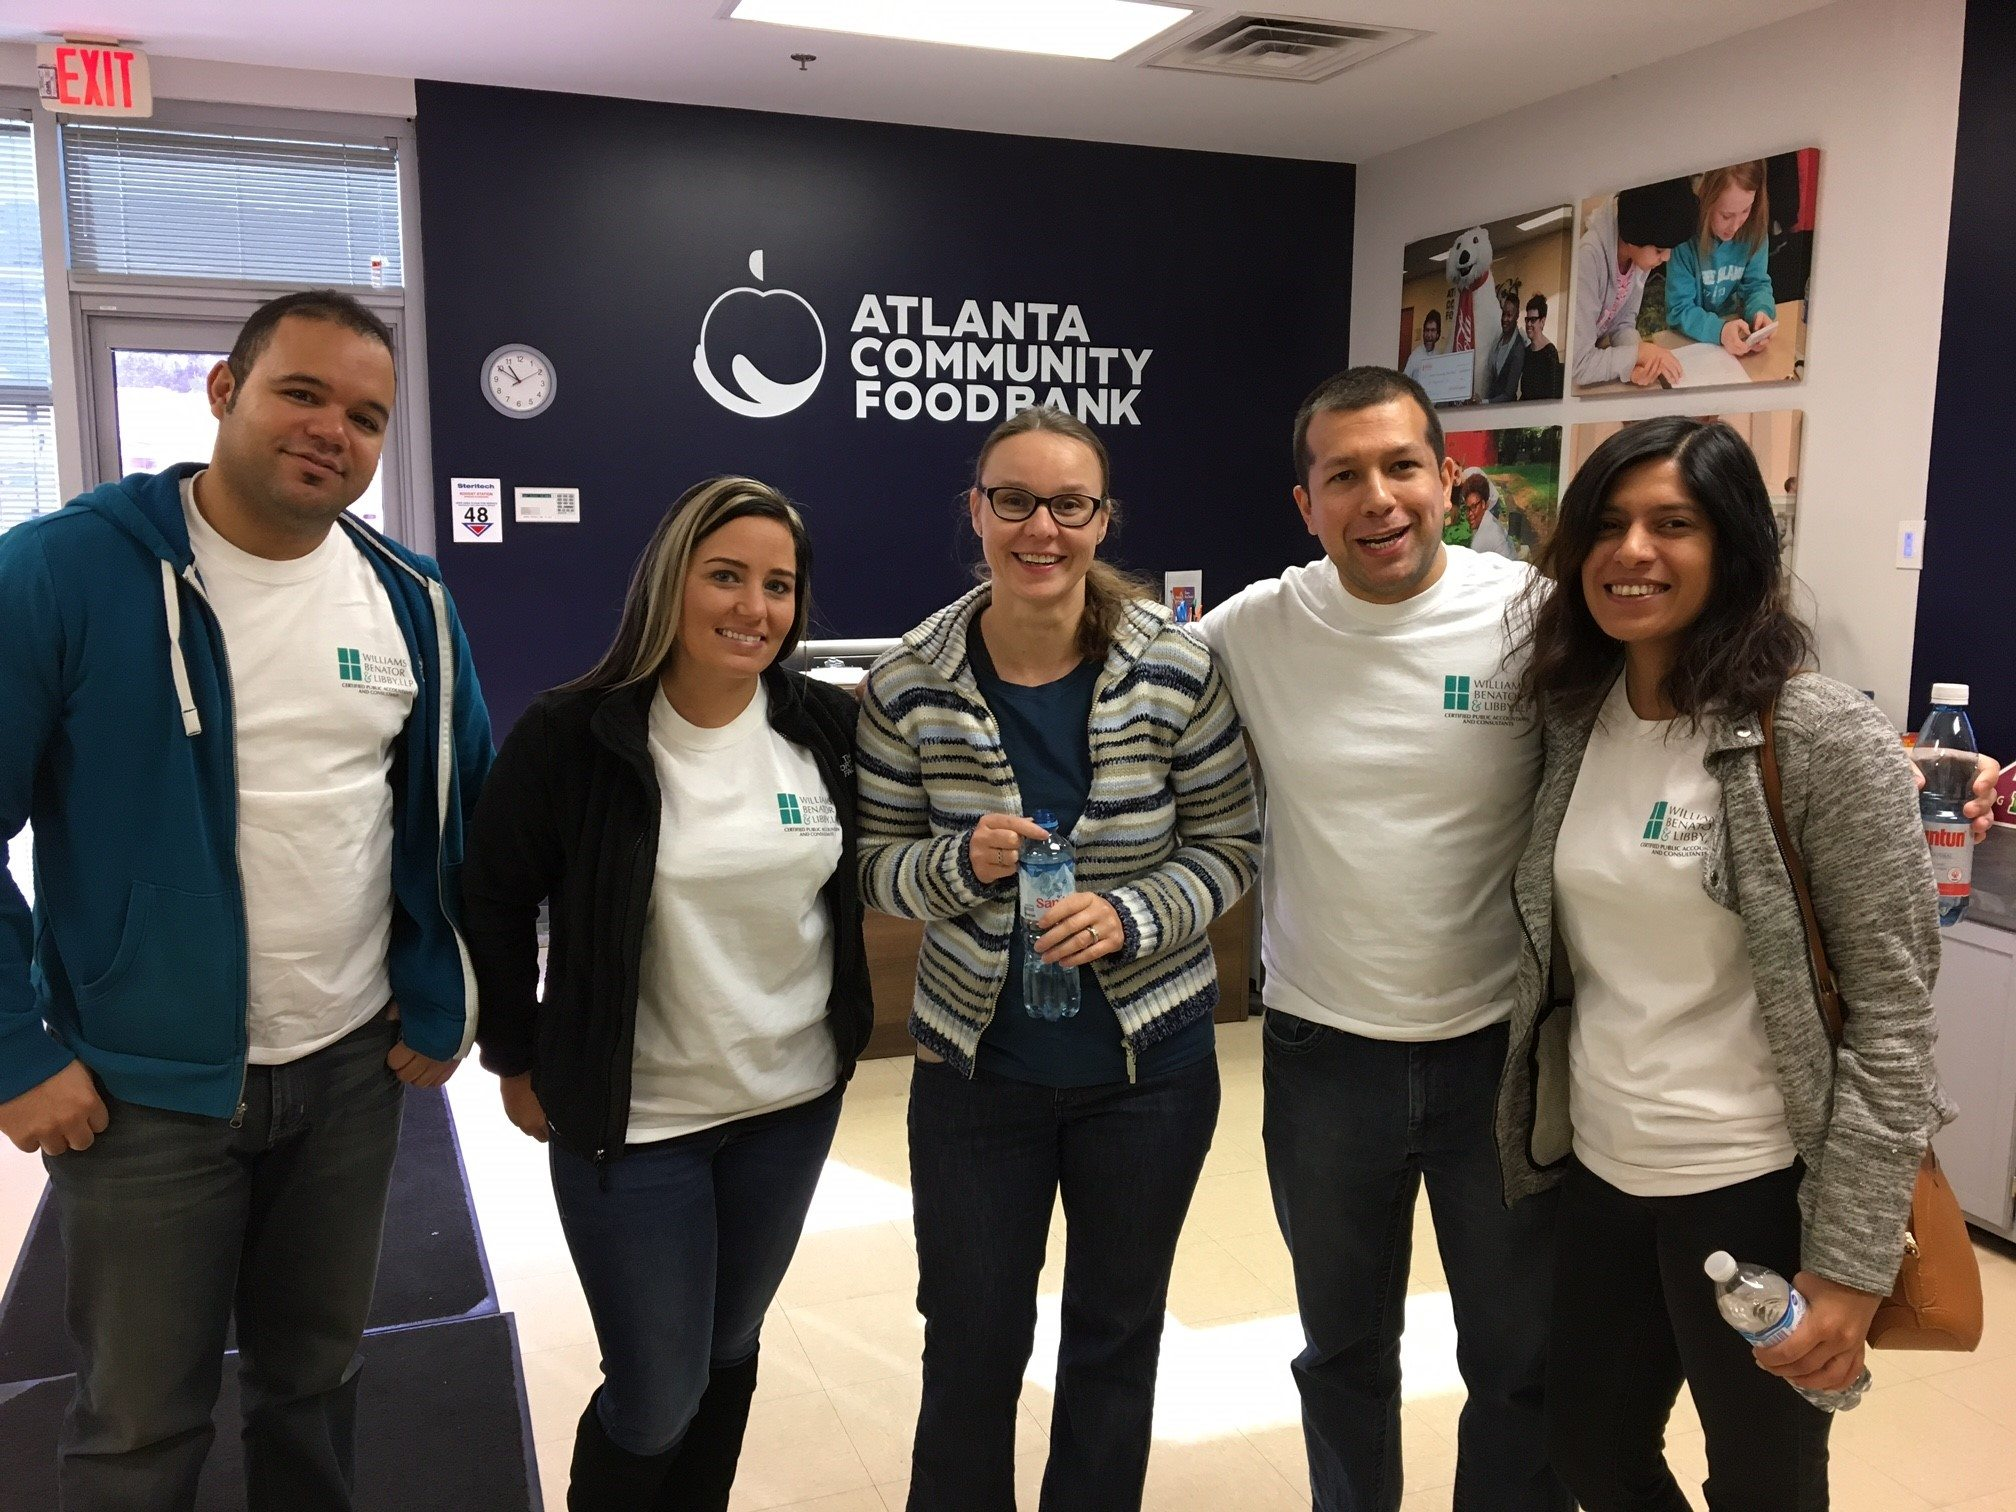 Danny, Molly, Petra, David and Sabika arrive at the Atlanta Community Food Bank to volunteer (2016).